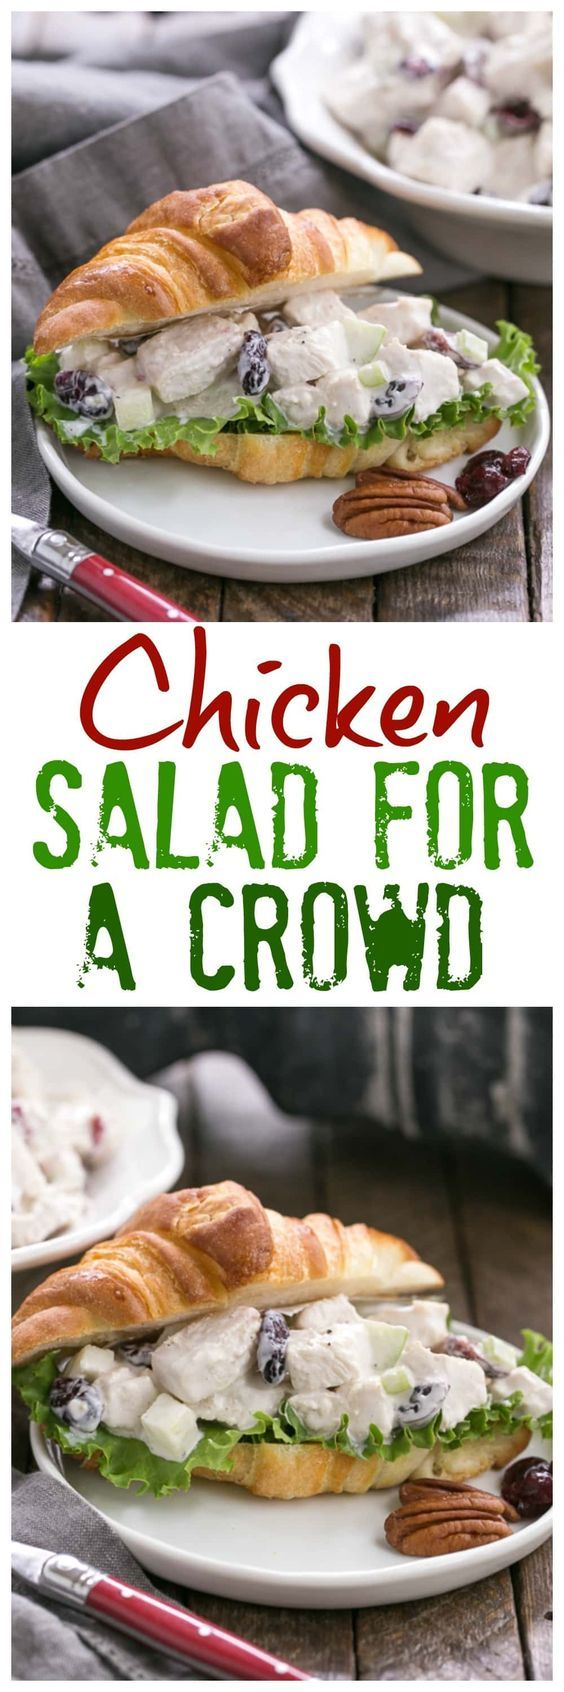 Cranberry Pecan Chicken Salad for a Crowd   Perfect for showers, luncheons and more! @lizzydo